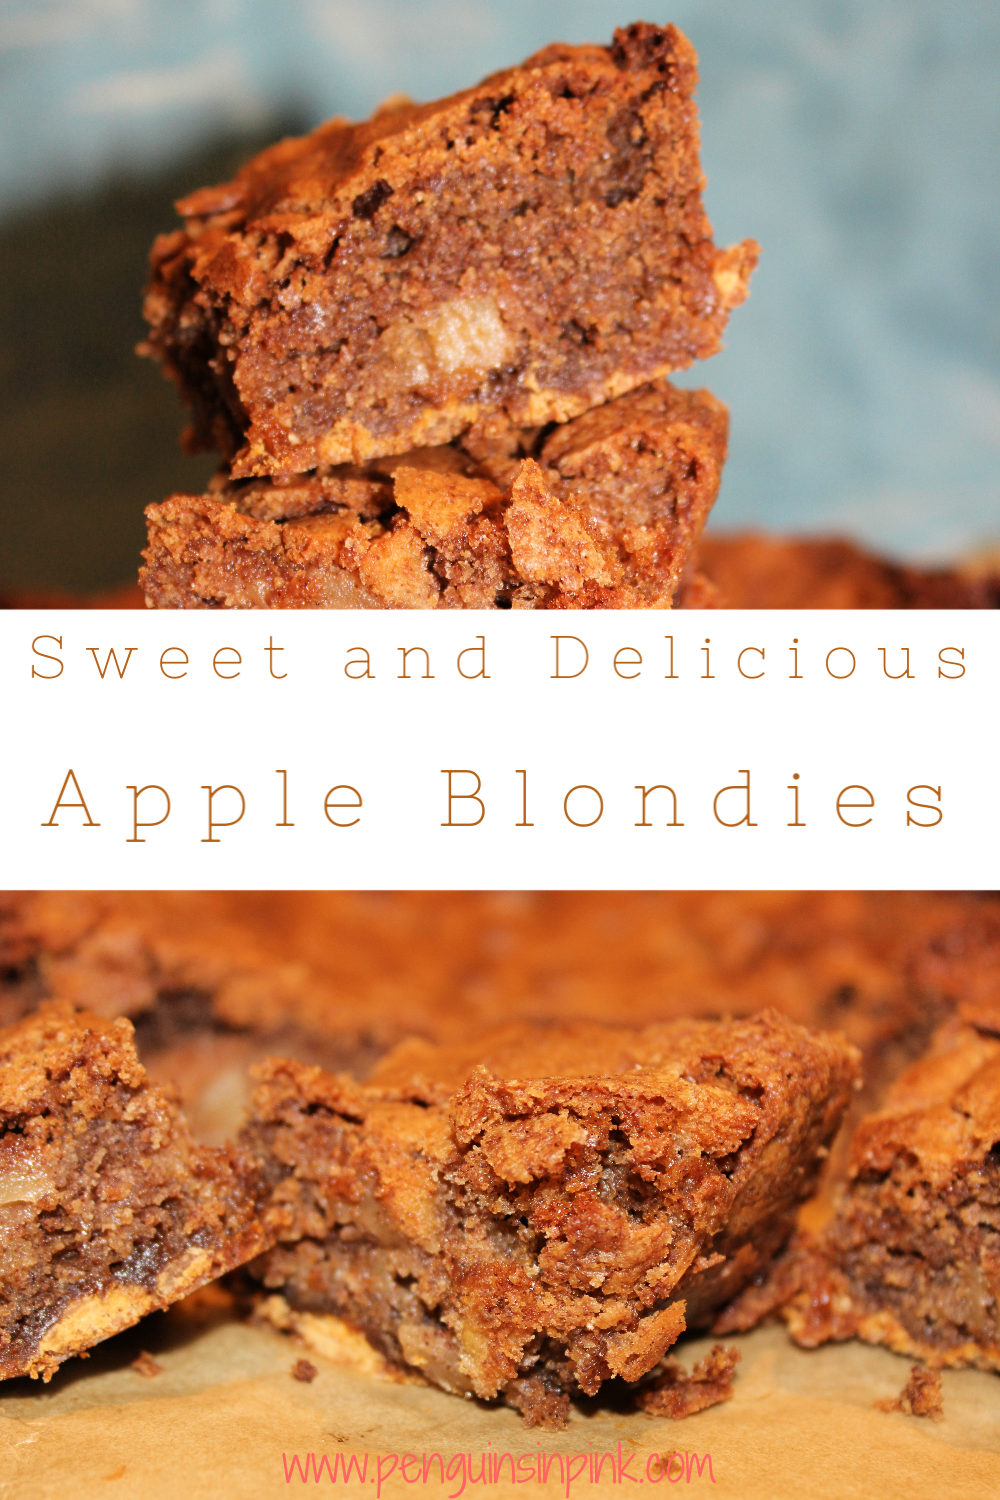 Looking for a new soon to be favorite treat? These Apple Blondies are dense, sweet treat that is balanced by the spicy cinnamon.